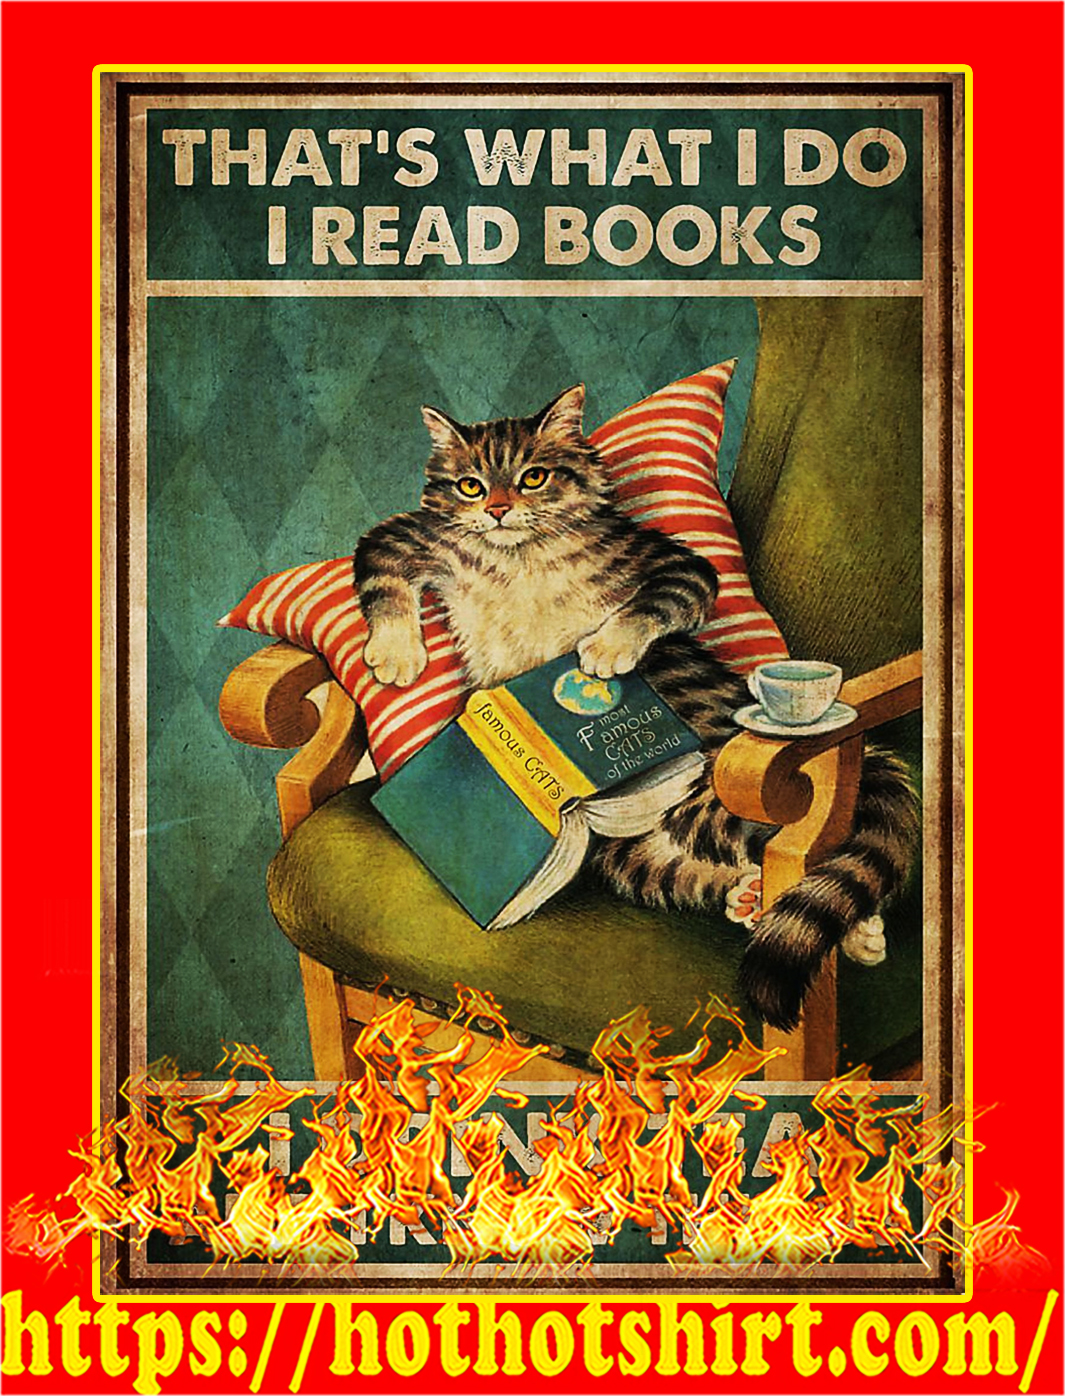 Cat That's what I do I read books poster - A3